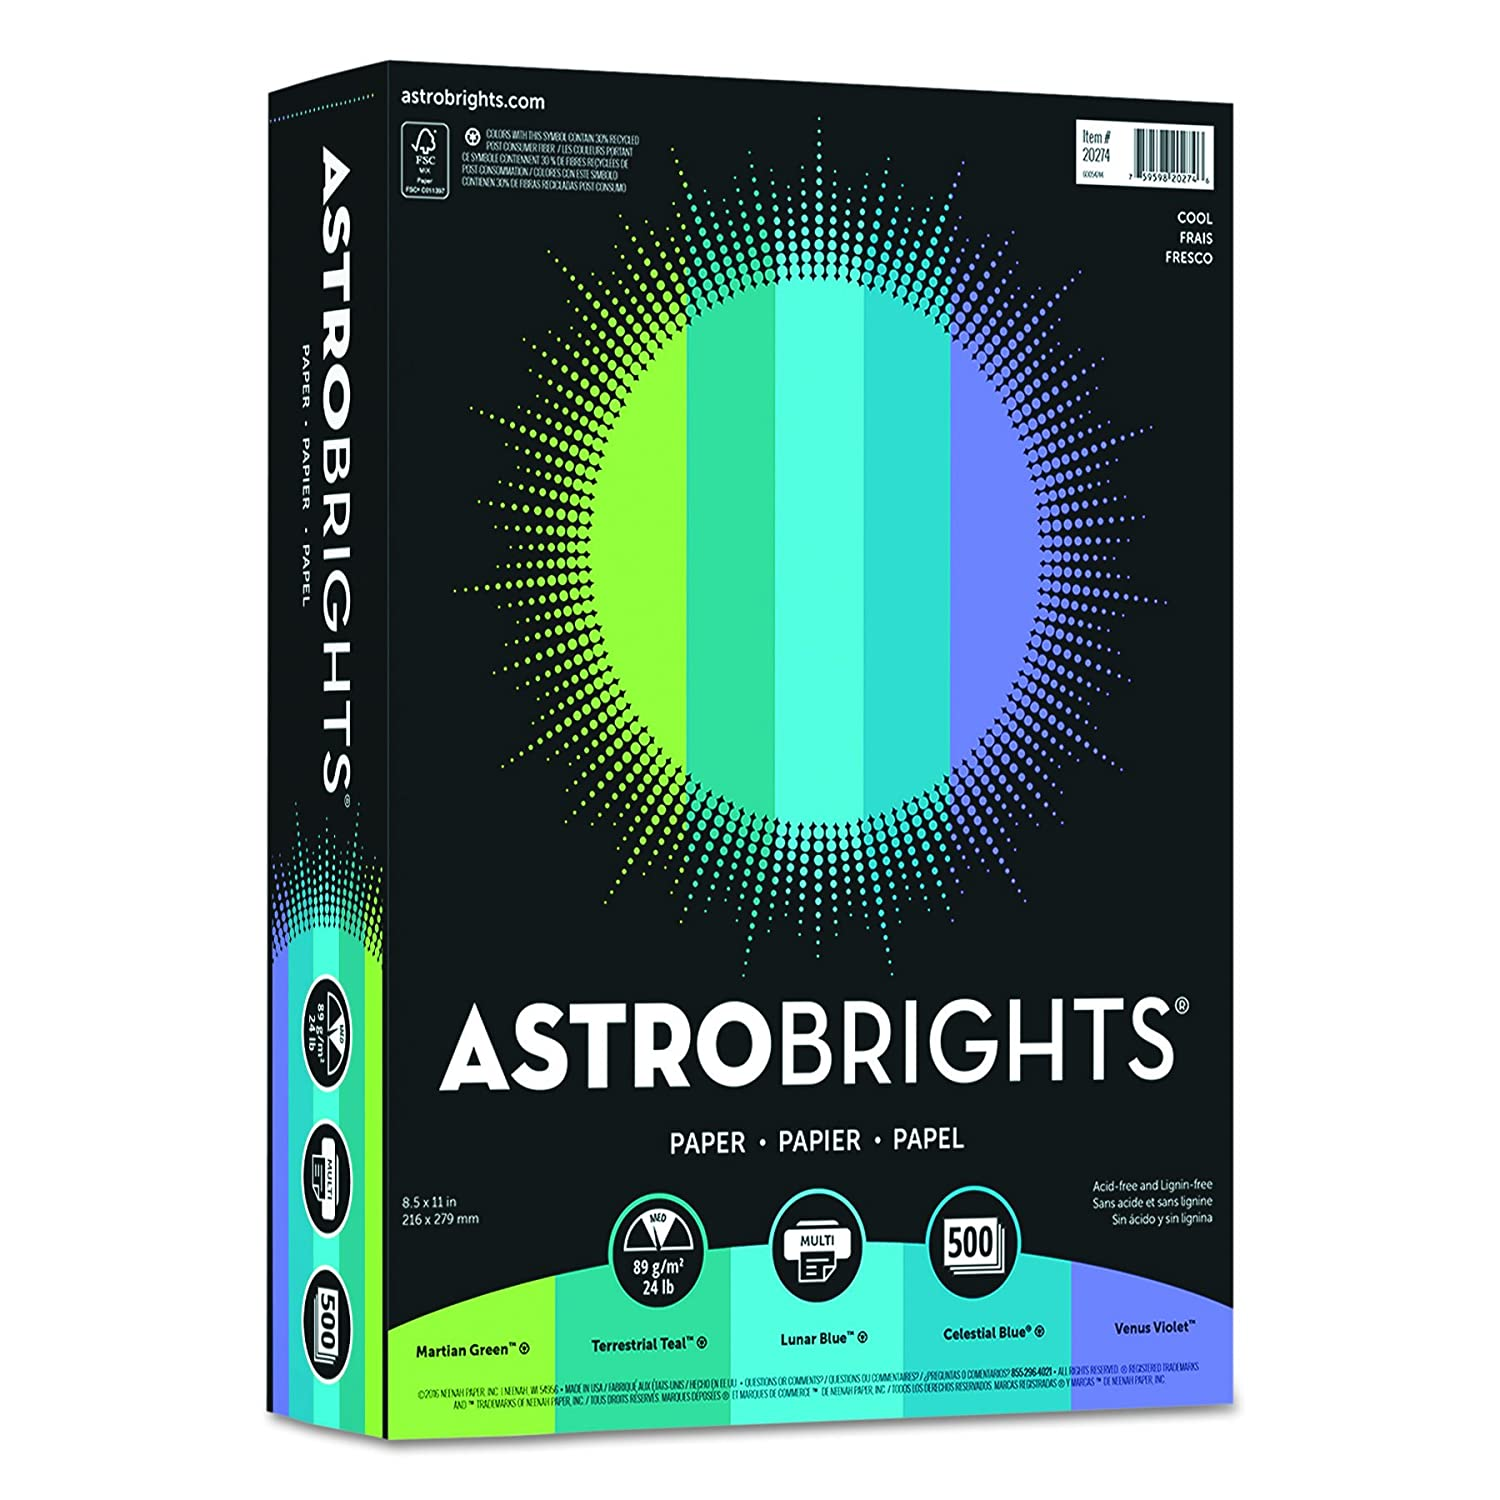 Astrobrights Color Paper, 8.5 x 11, 24 lb / 89 gsm, Cool 5-Color Assortment, 500 Sheets 8.5 x 11 Wausau Paper Corp. 20274